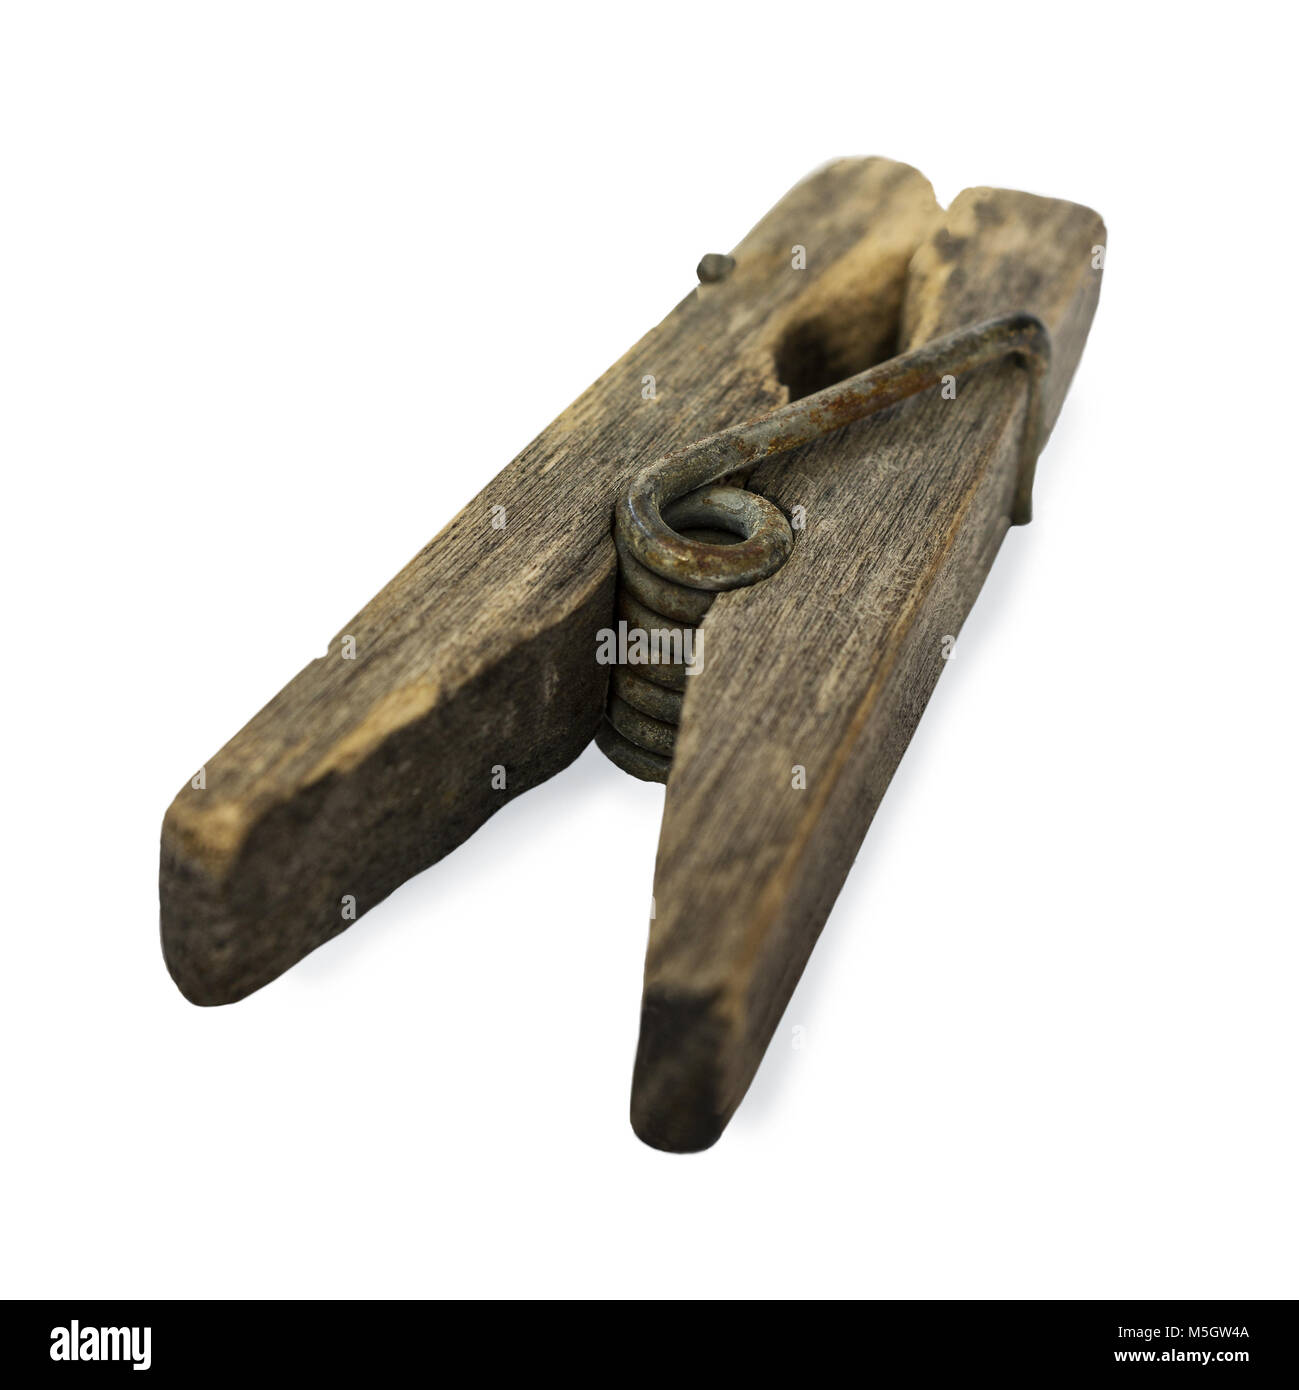 Ramshackle wooden clothespin on a white background - Stock Image